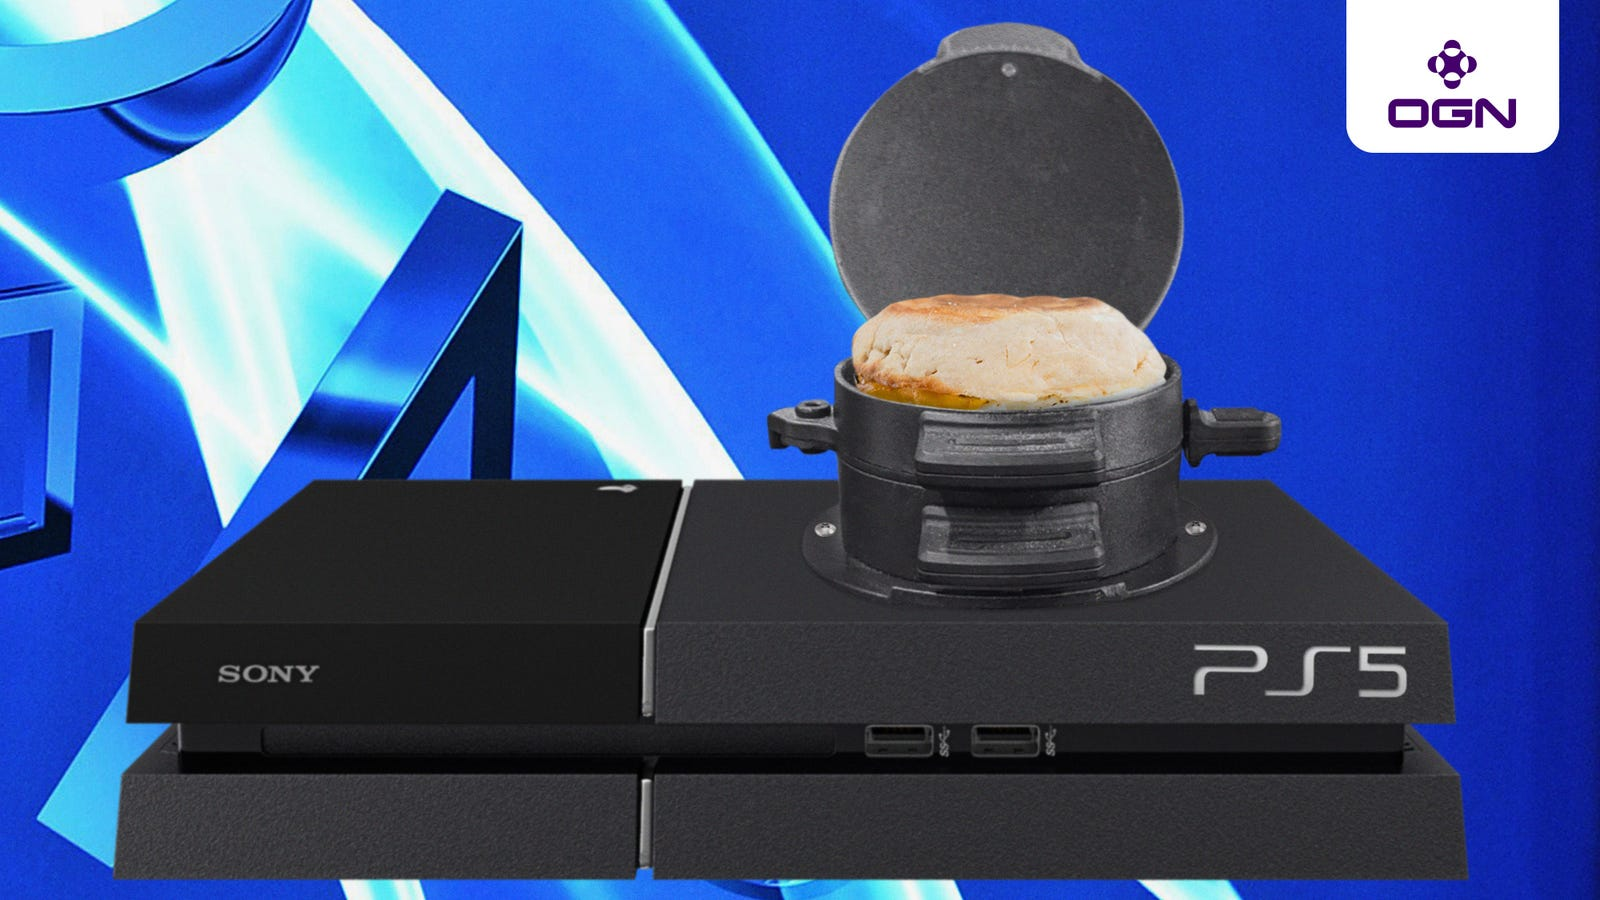 Sony Reveals PlayStation 5 Will Feature Fully Functioning Breakfast Sandwich Maker